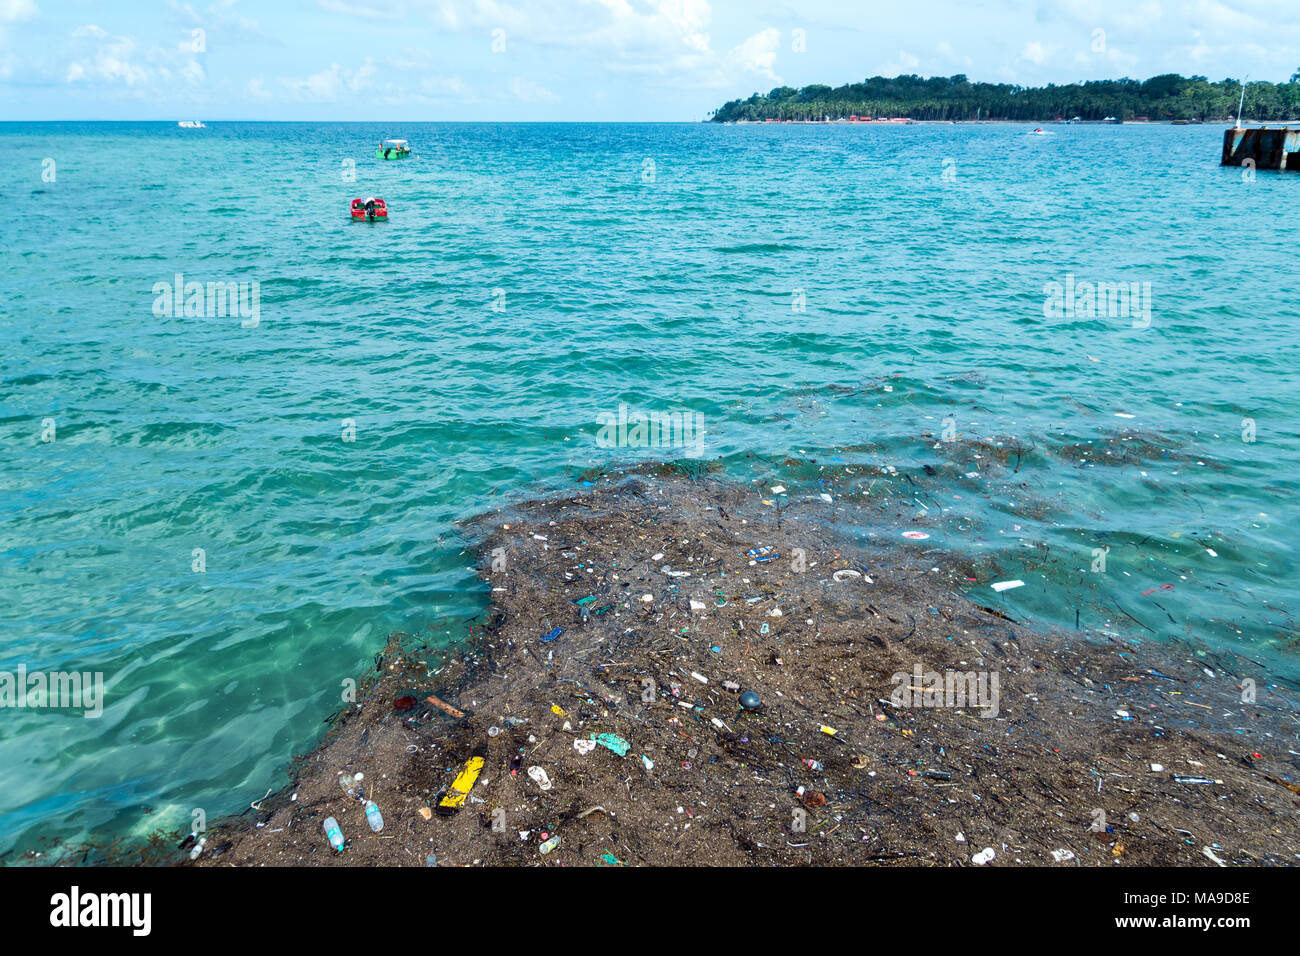 Plastic rubbish pollution in ocean. Photo showing pollution problem of garbage thrown directly into the sea with no proper trash collection or recycli - Stock Image